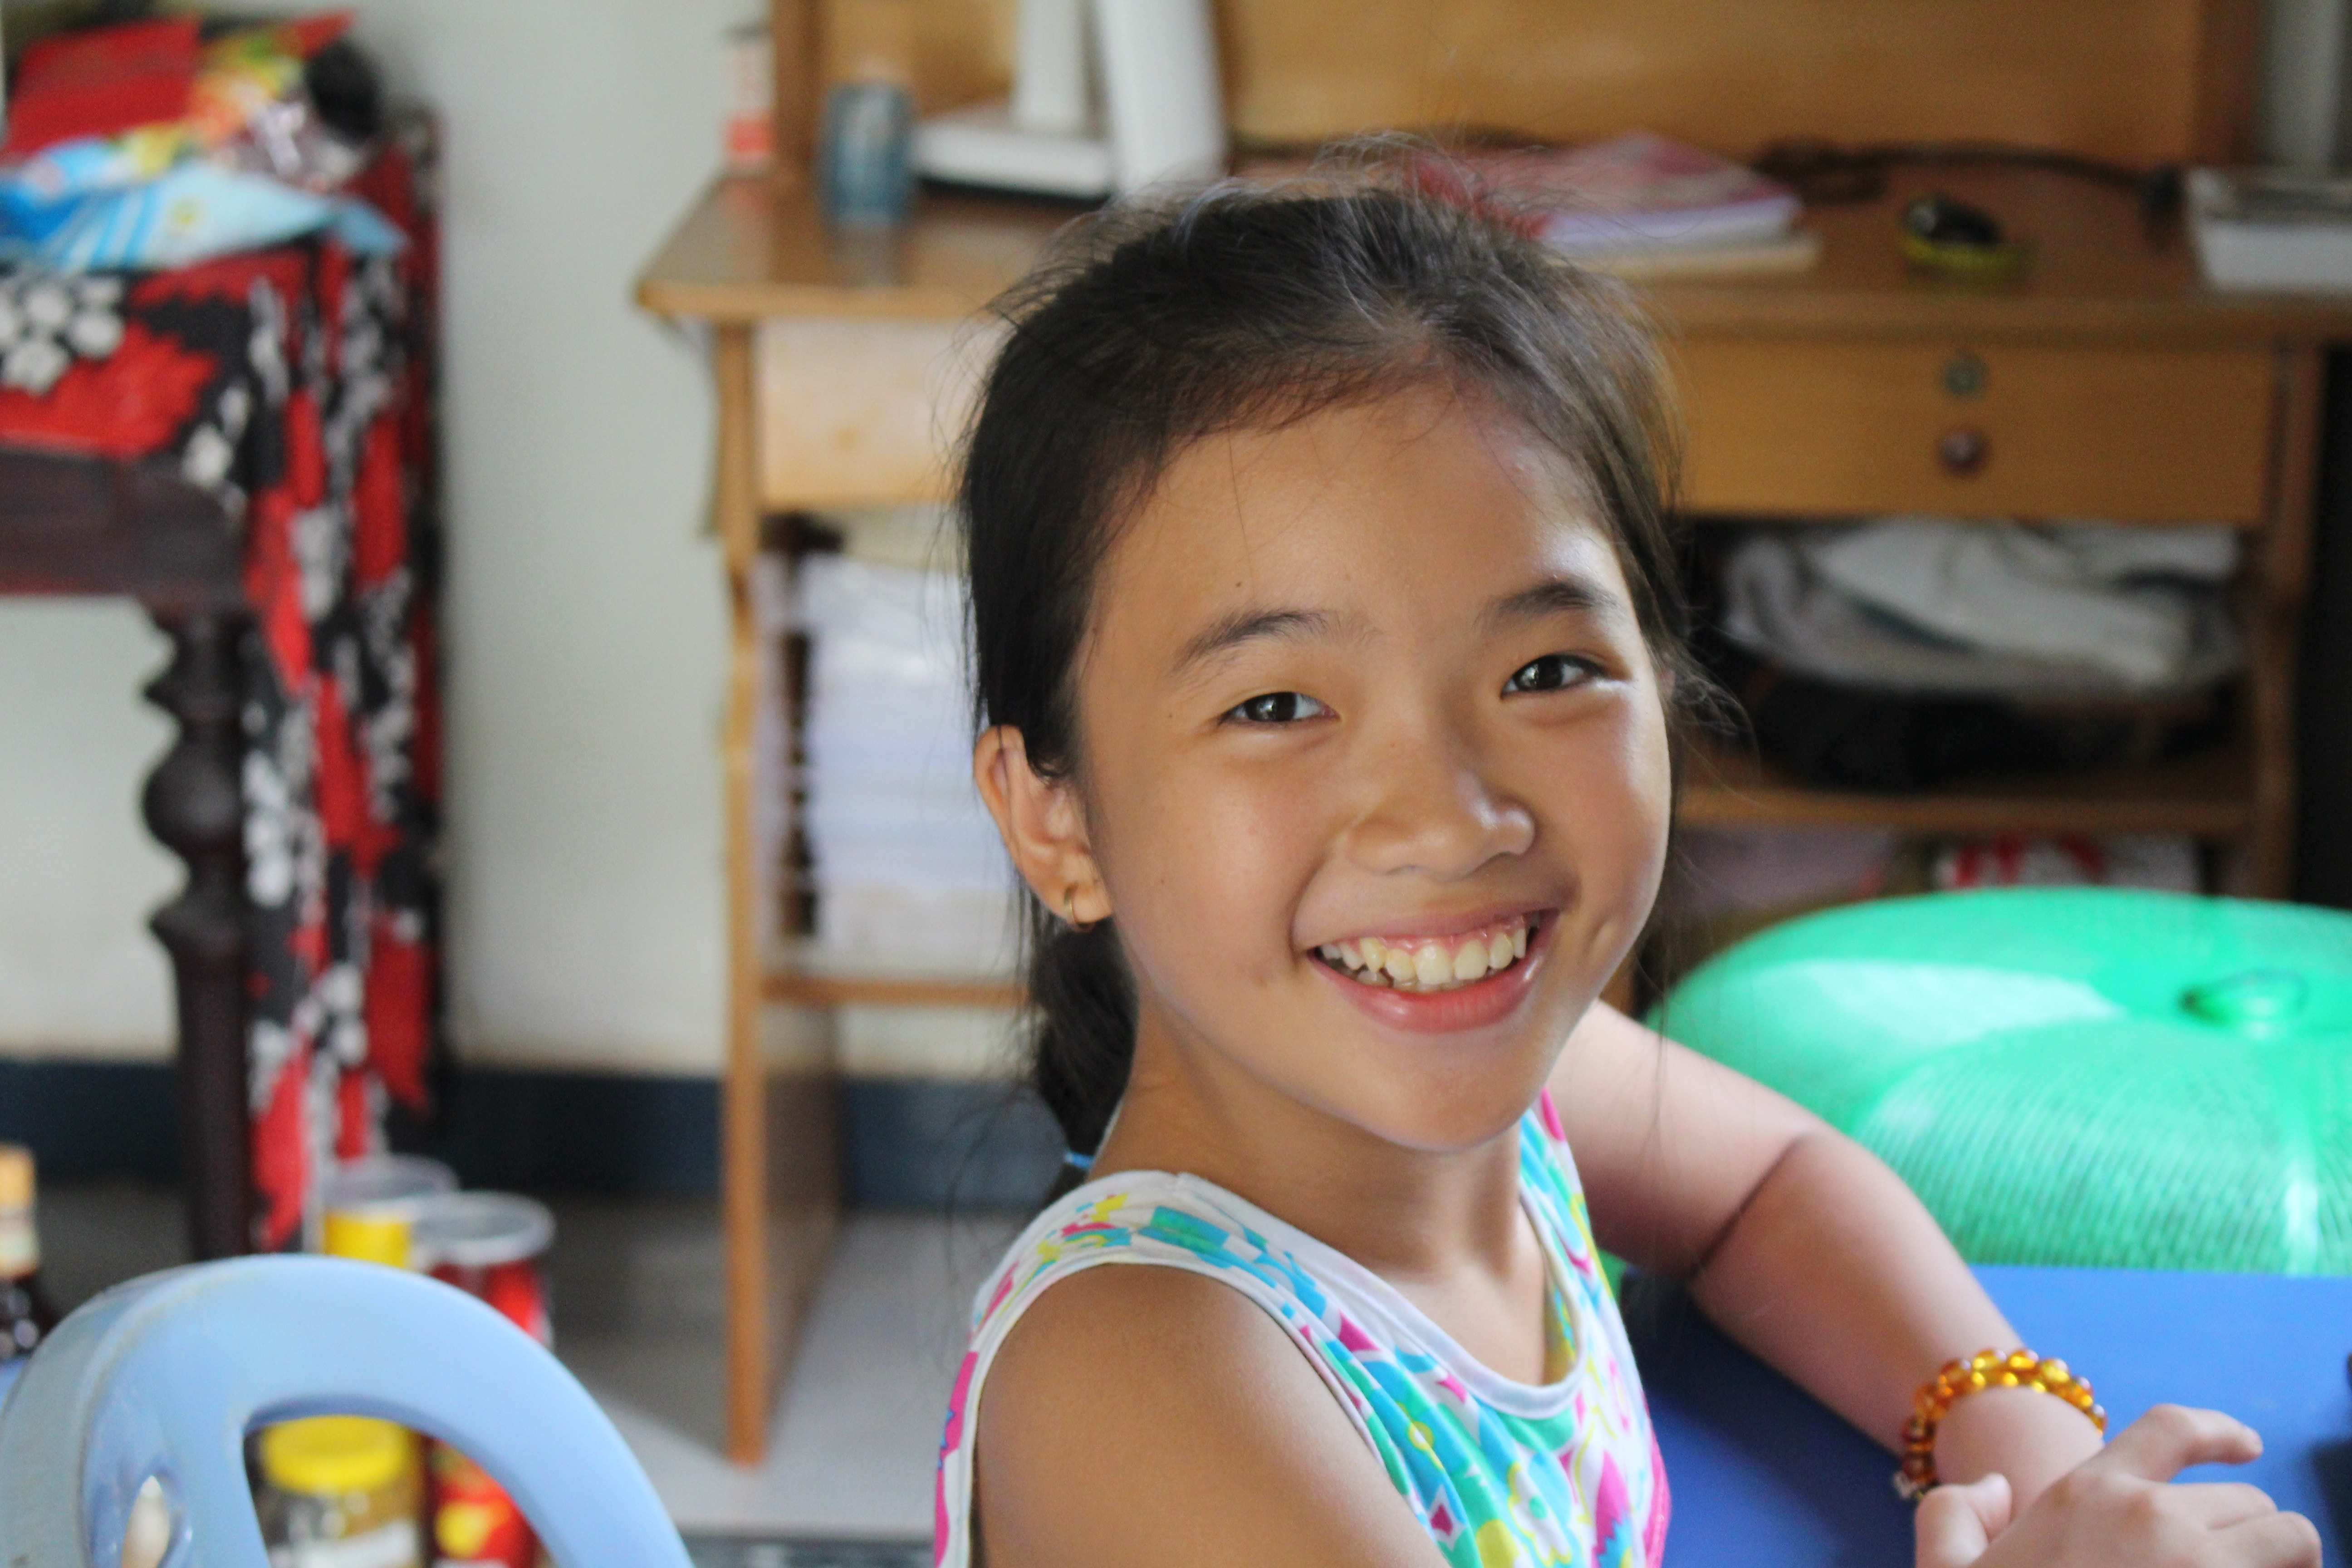 Awesome ESL Teaching Materials - Smiling Girl